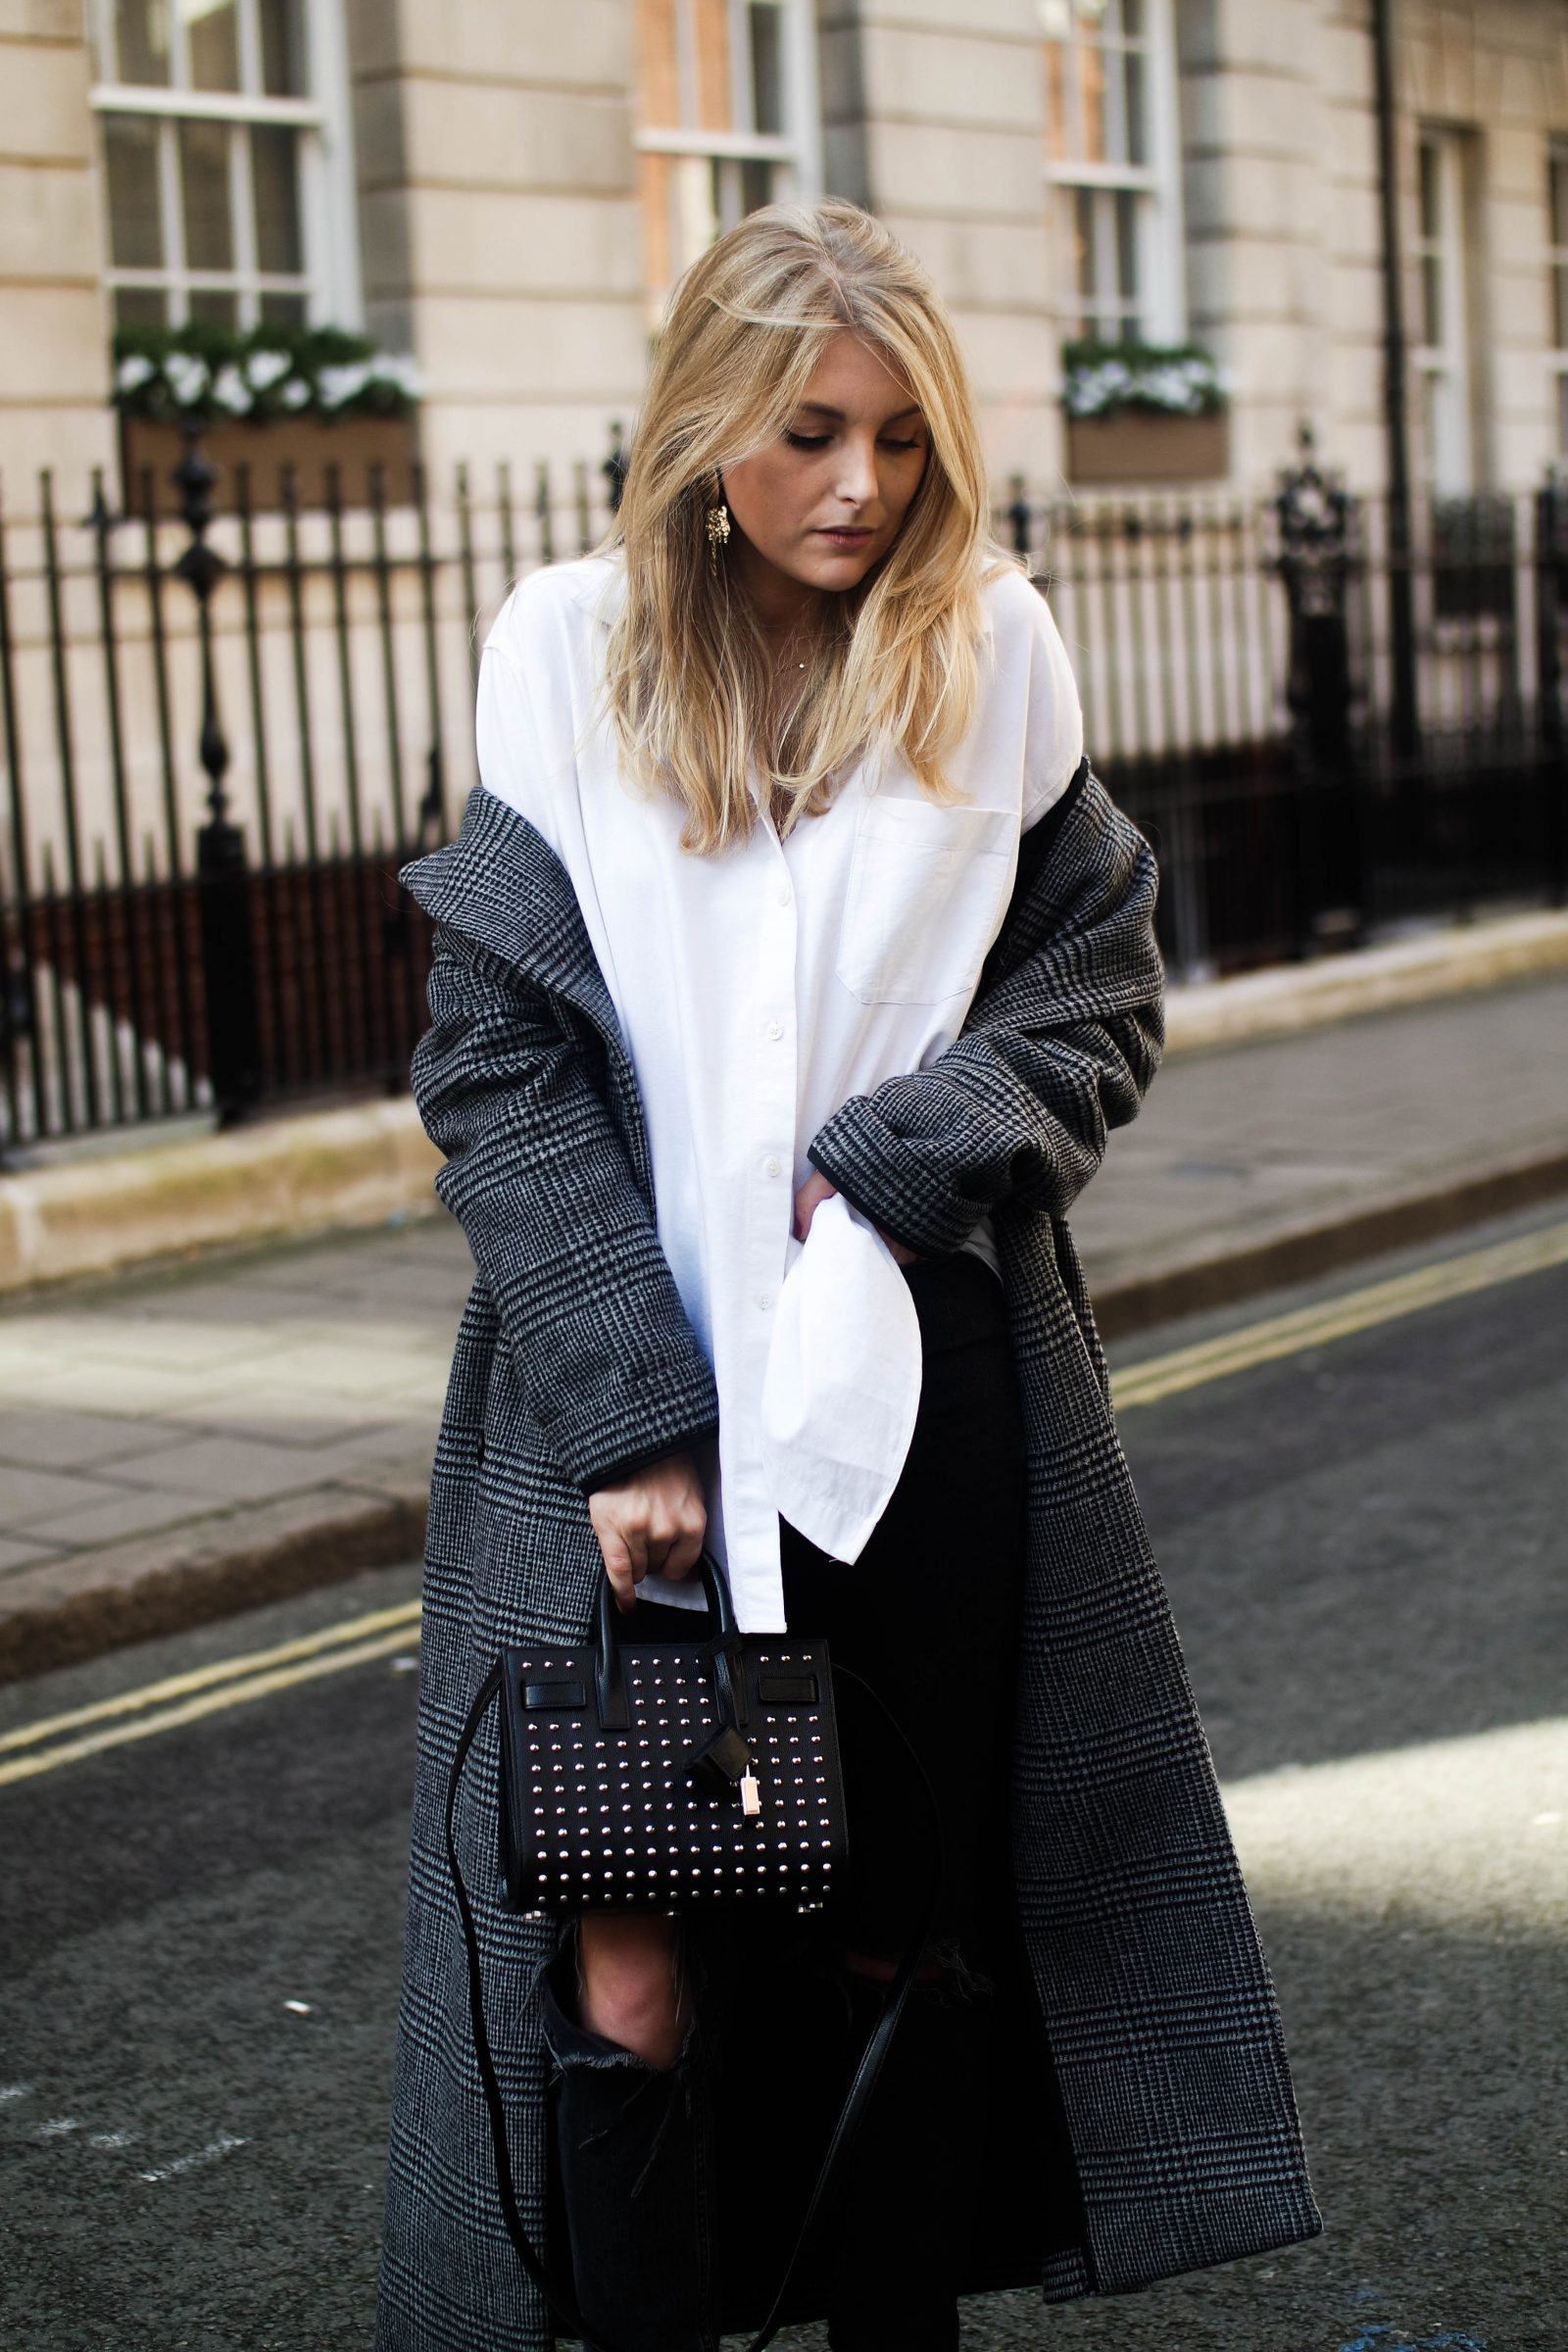 LFW Day 3 Keeping It Monochrome - Blogger Style